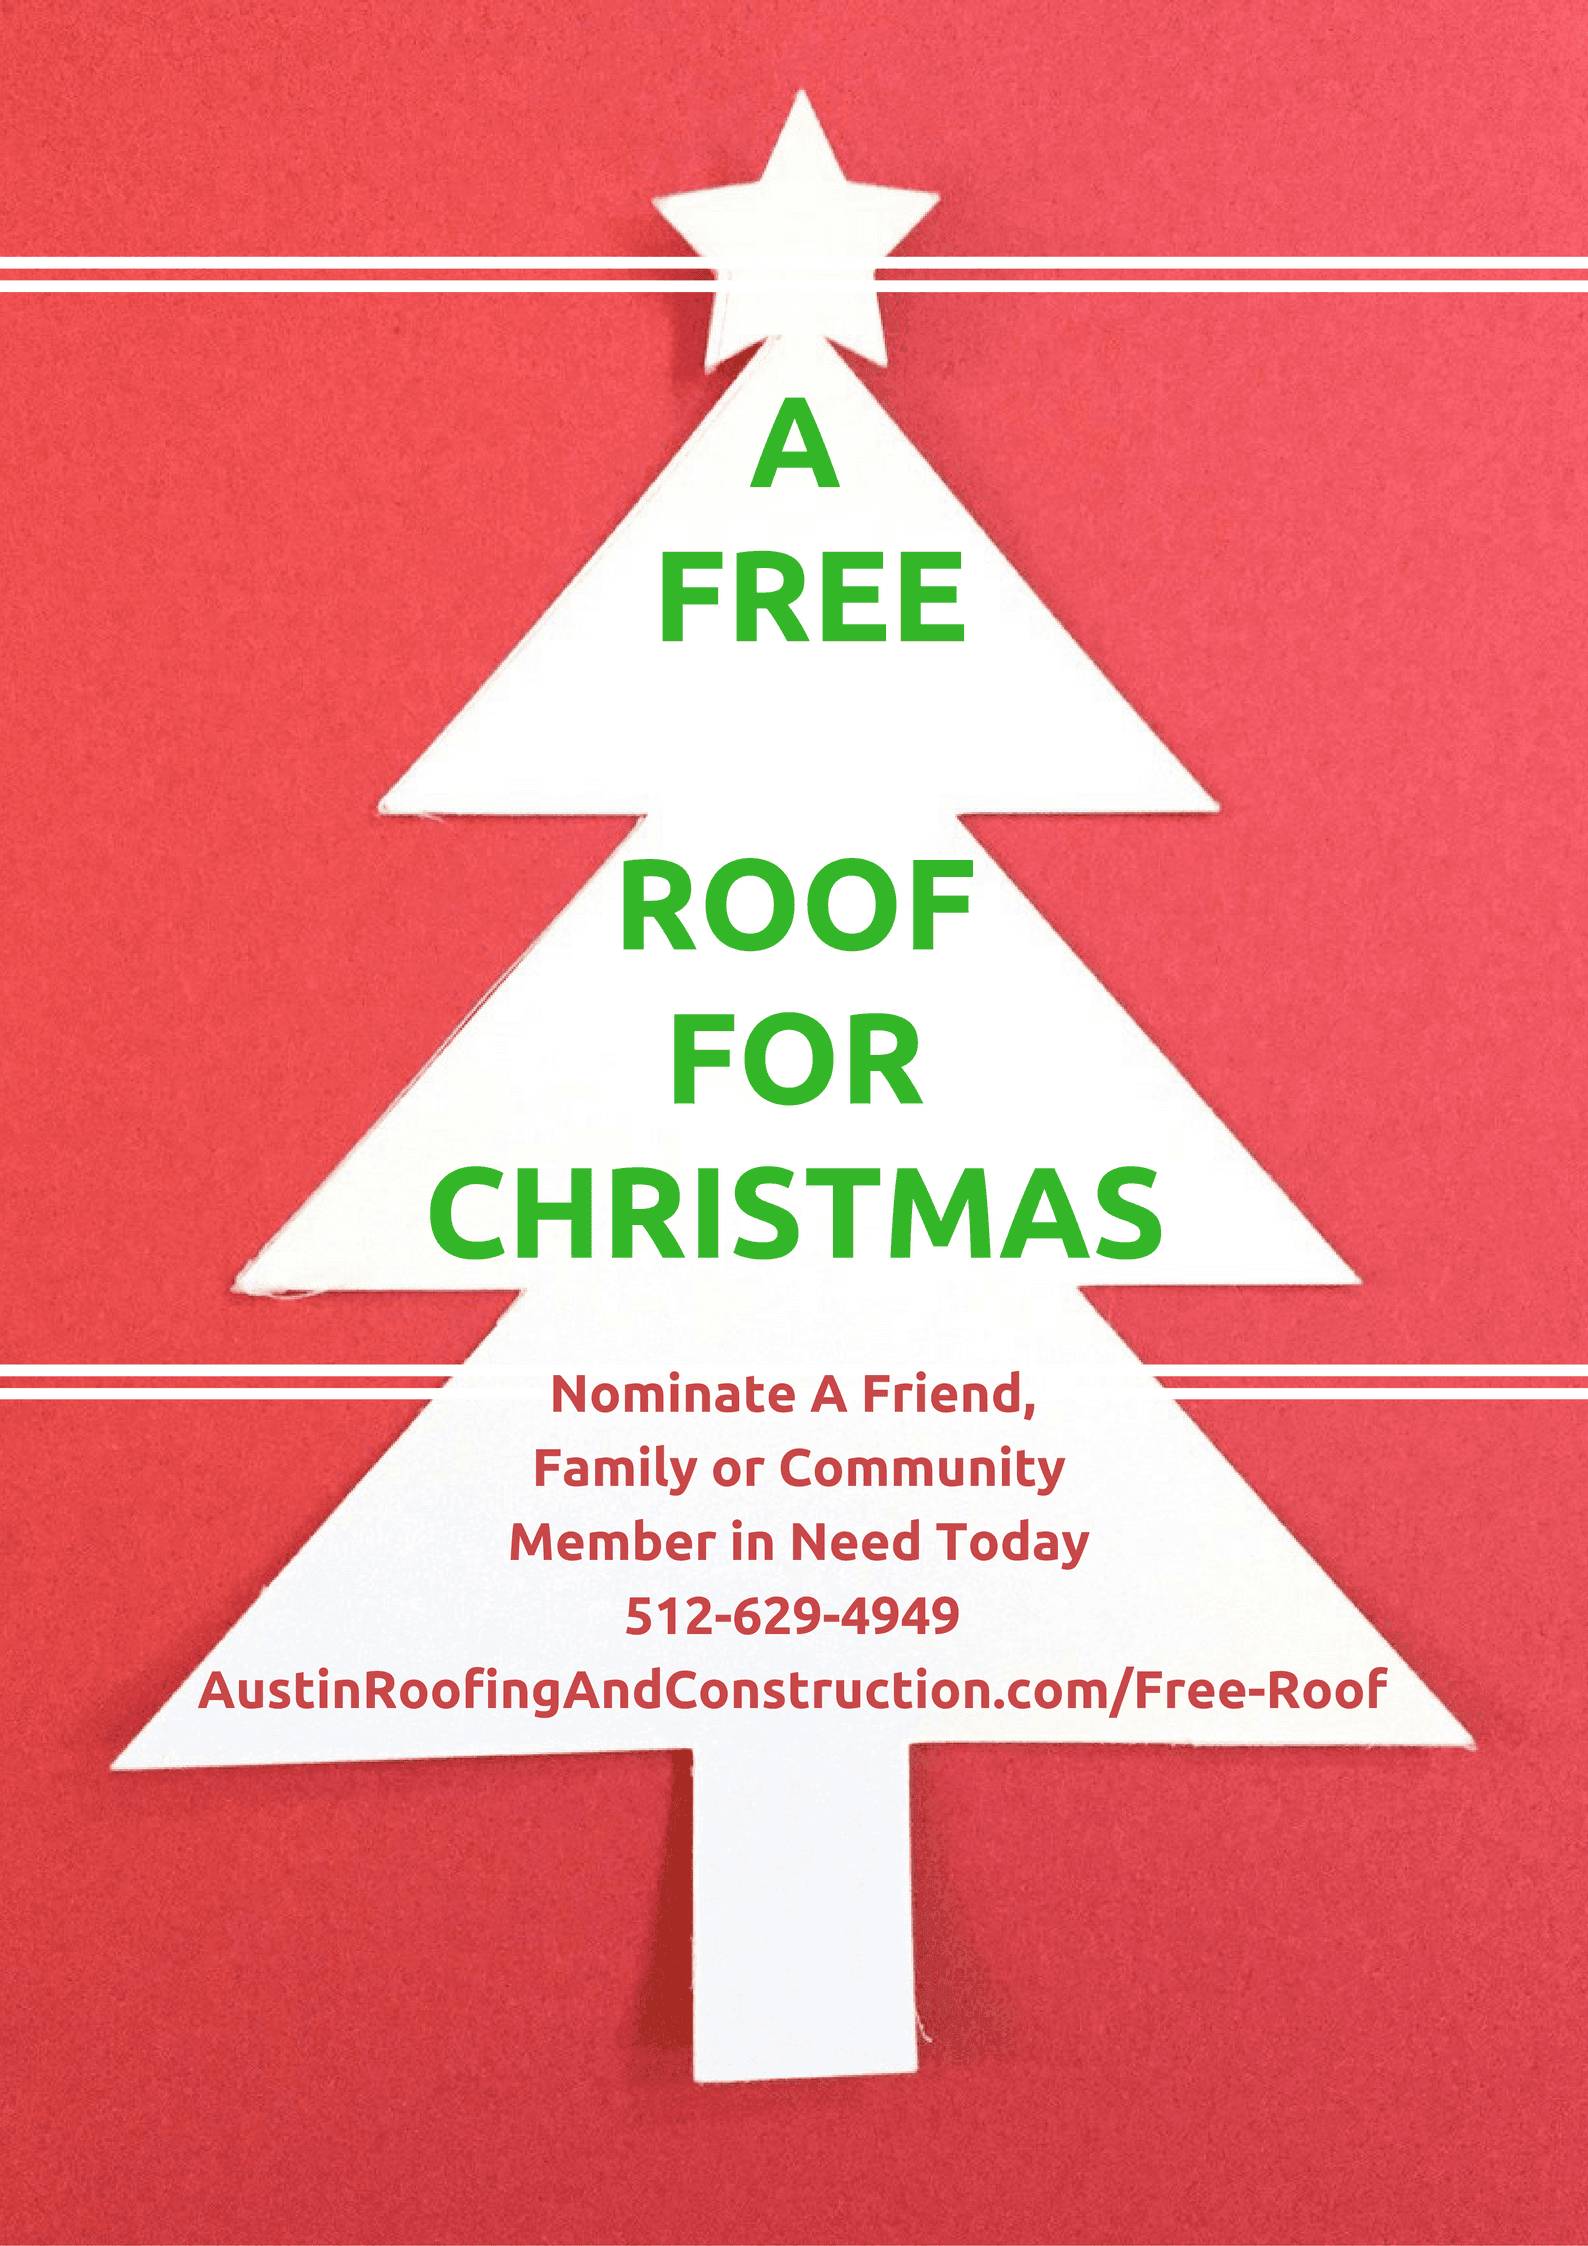 A Free Roof For Christmas